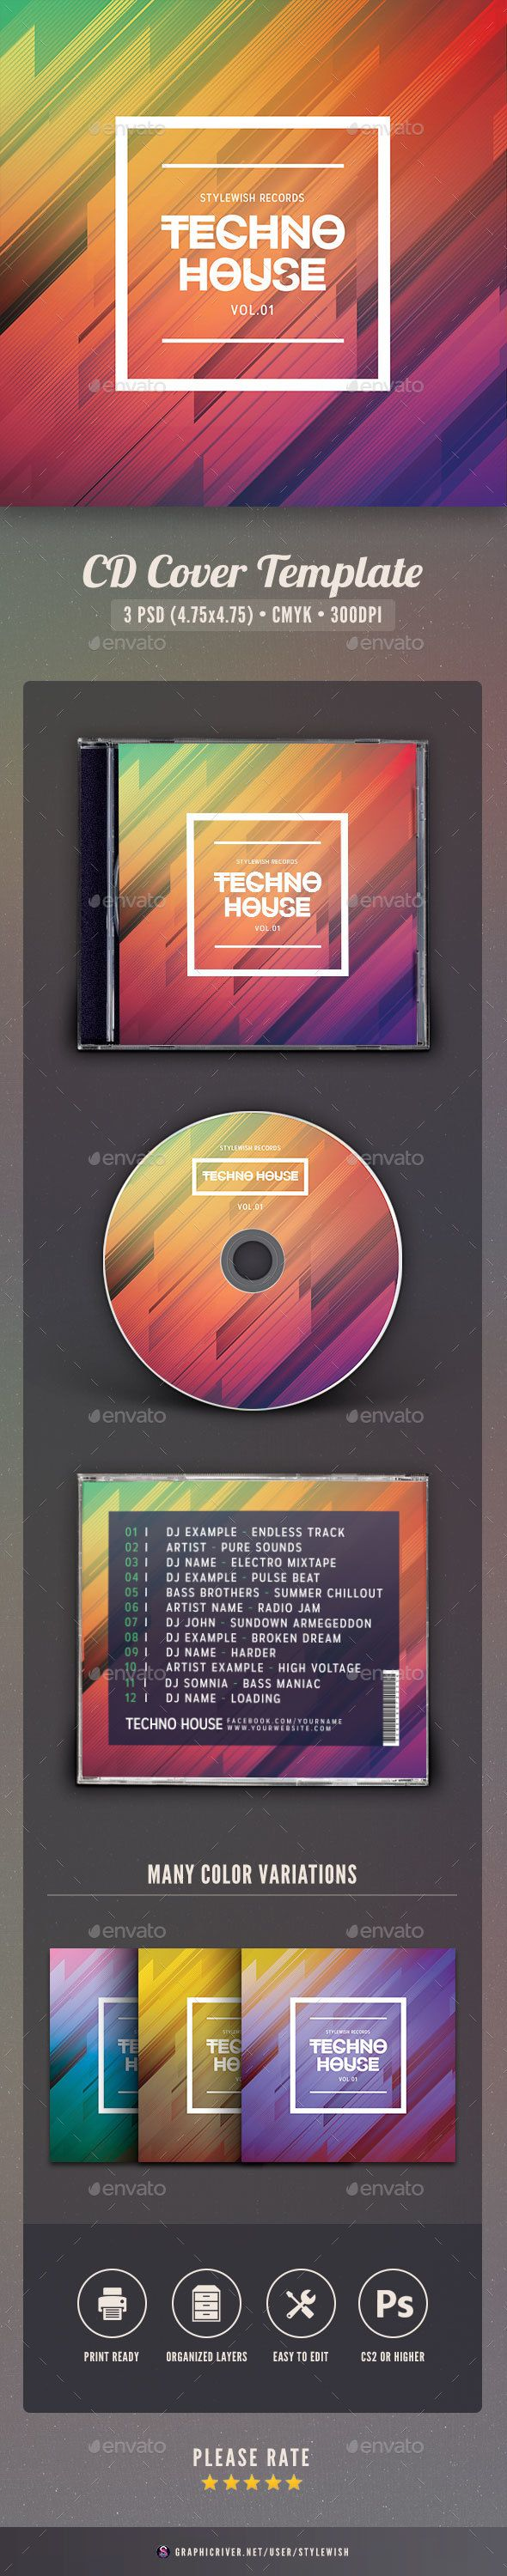 Techno House CD Cover Artwork - CD & DVD Artwork Print Templates